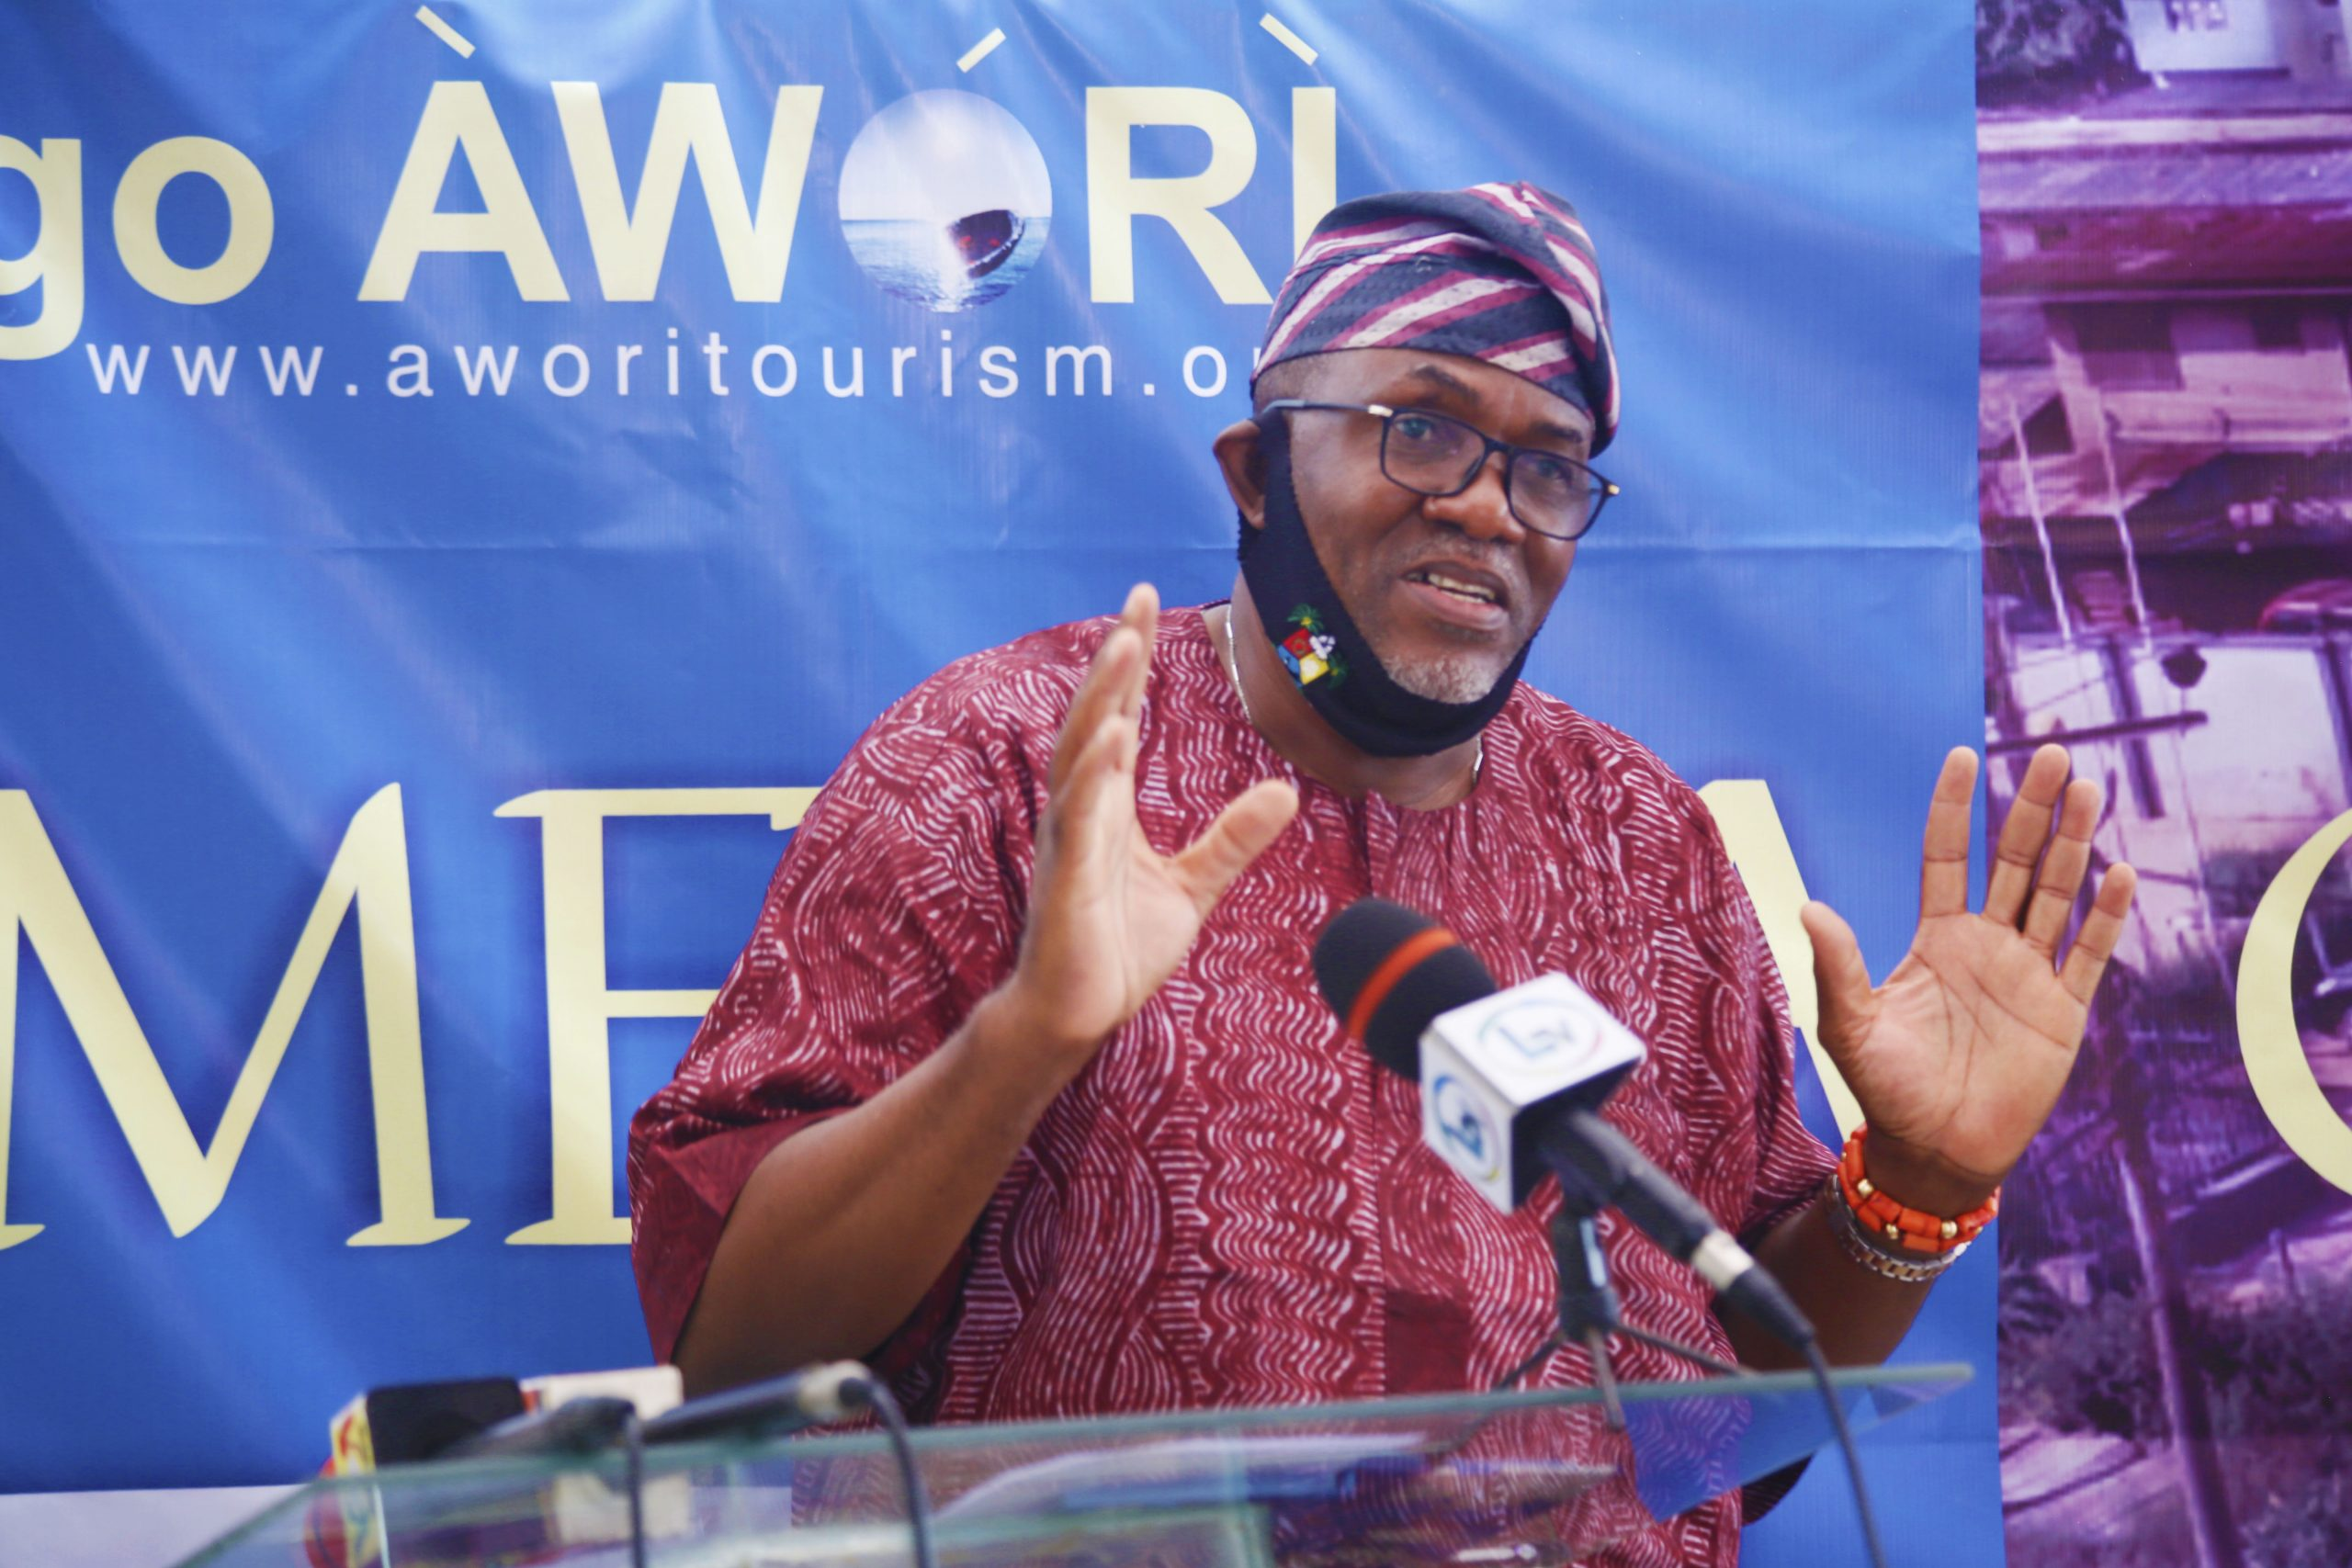 Ogun Losing Over $5b In Tourism To Bad Roads- Awori Tourism Board Chairman, Prince Femi Fadina